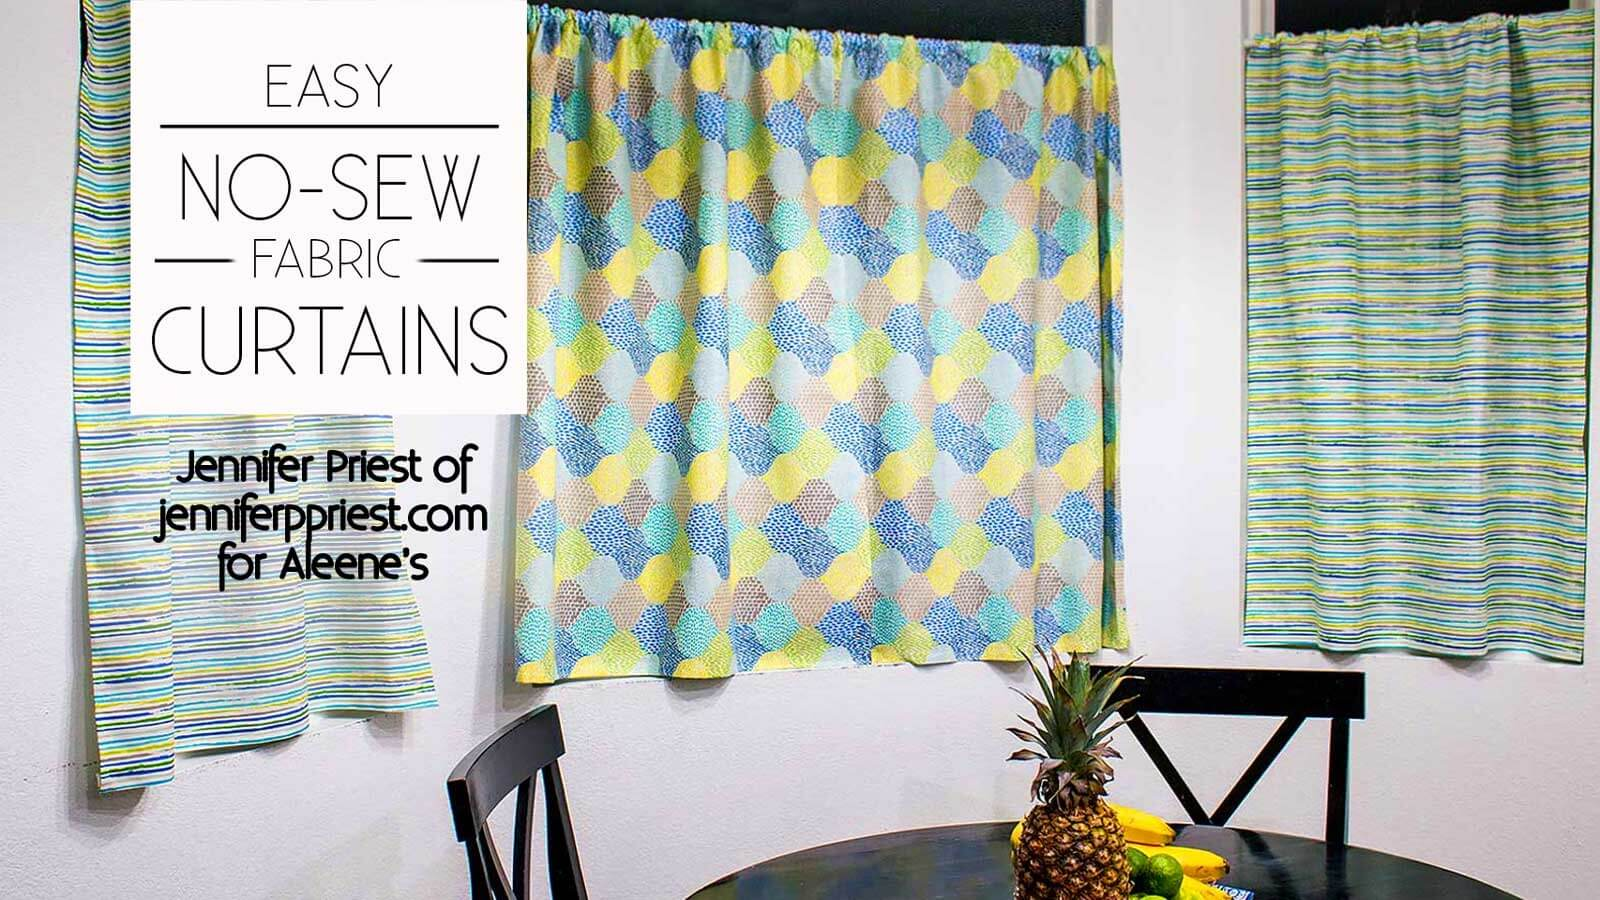 Picture of No Sew Fabric Curtains